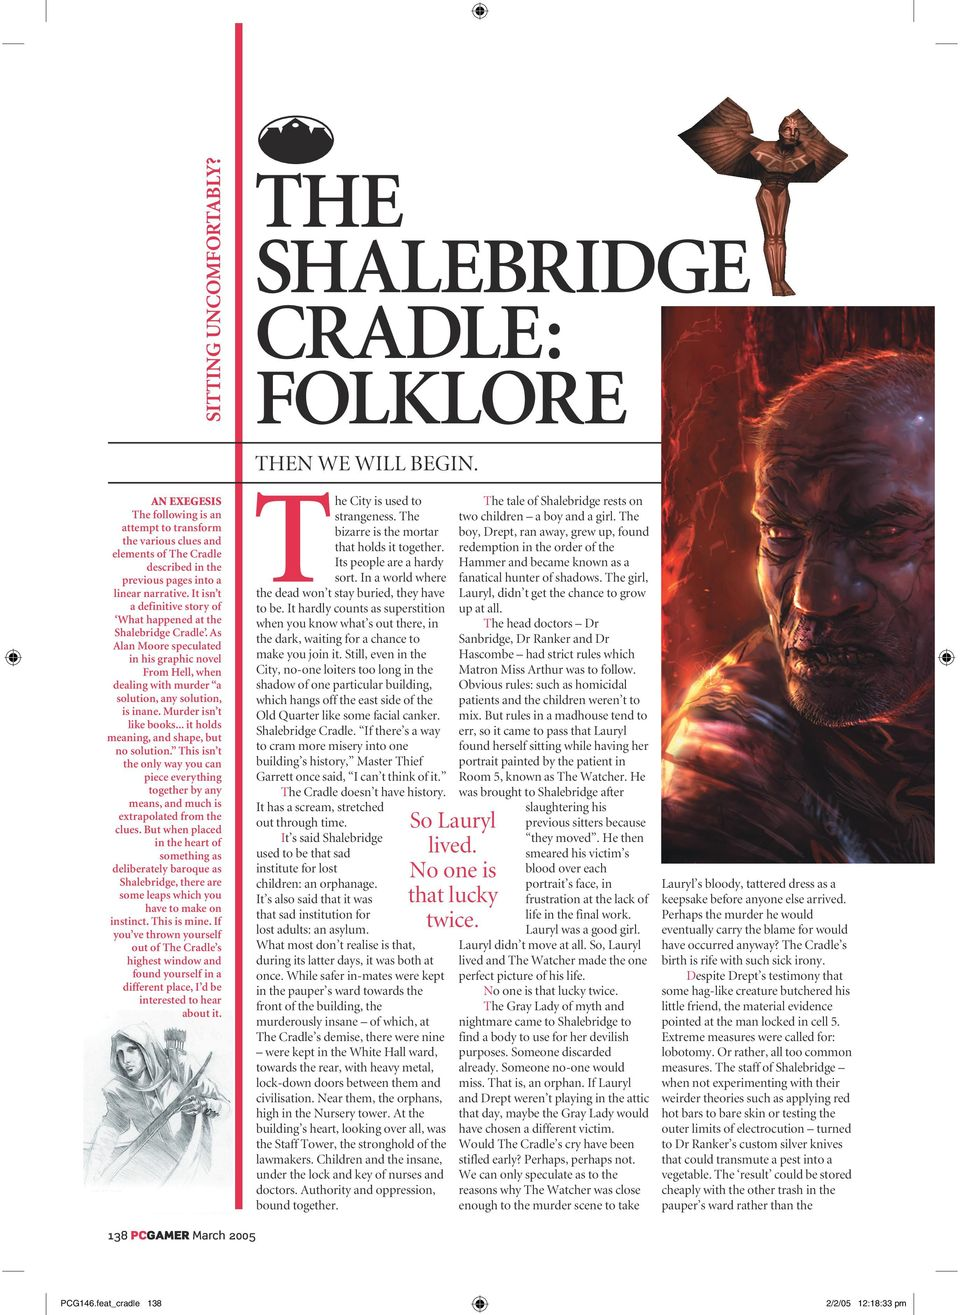 It isn t a definitive story of What happened at the Shalebridge Cradle. As Alan Moore speculated in his graphic novel From Hell, when dealing with murder a solution, any solution, is inane.